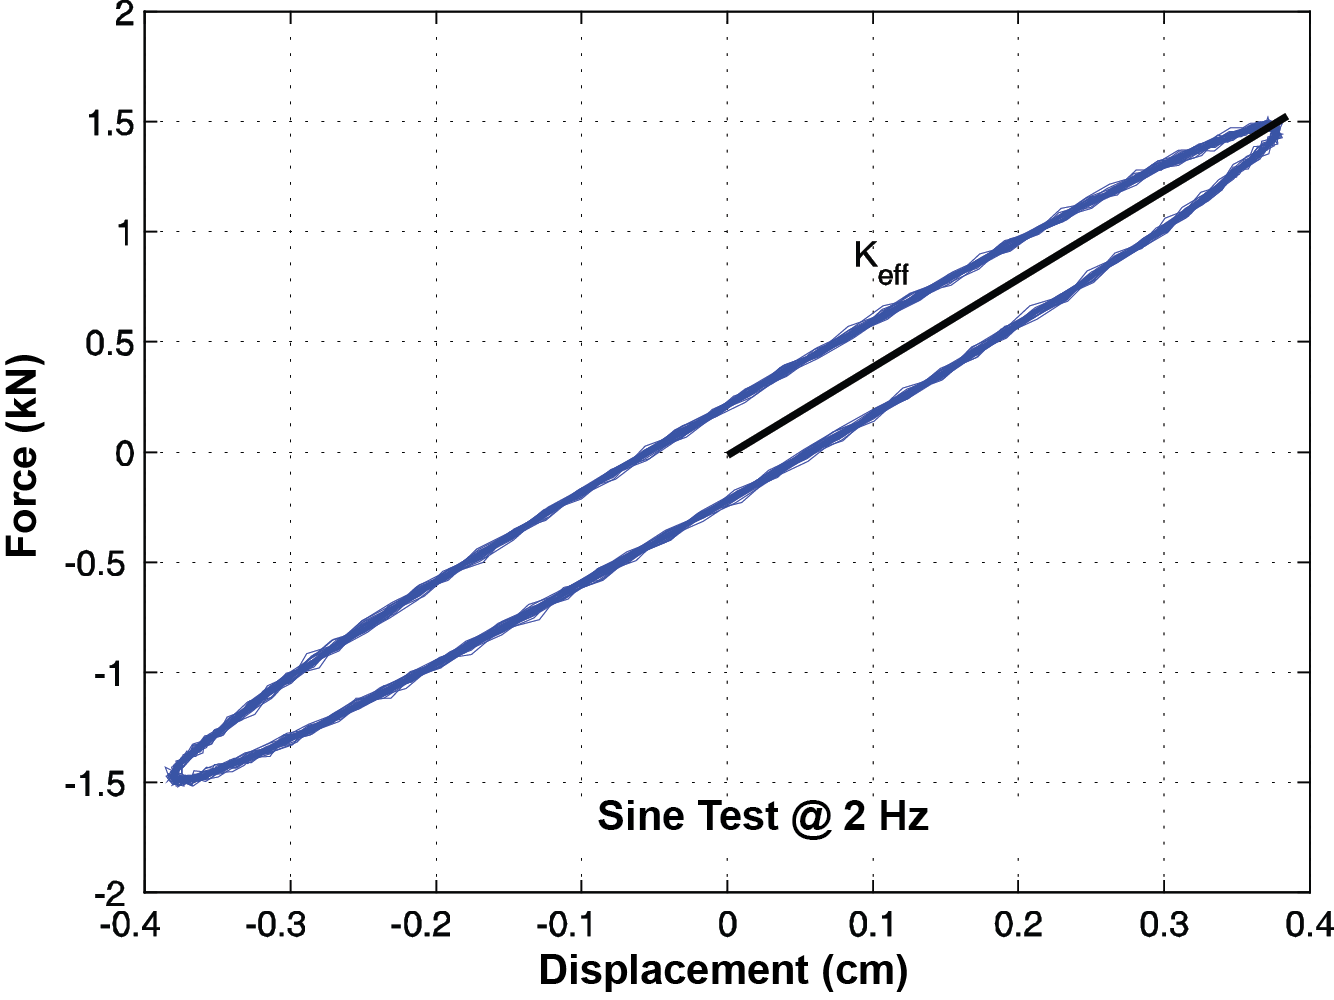 Experimental System Identification of Elastomeric Isolation Bearing